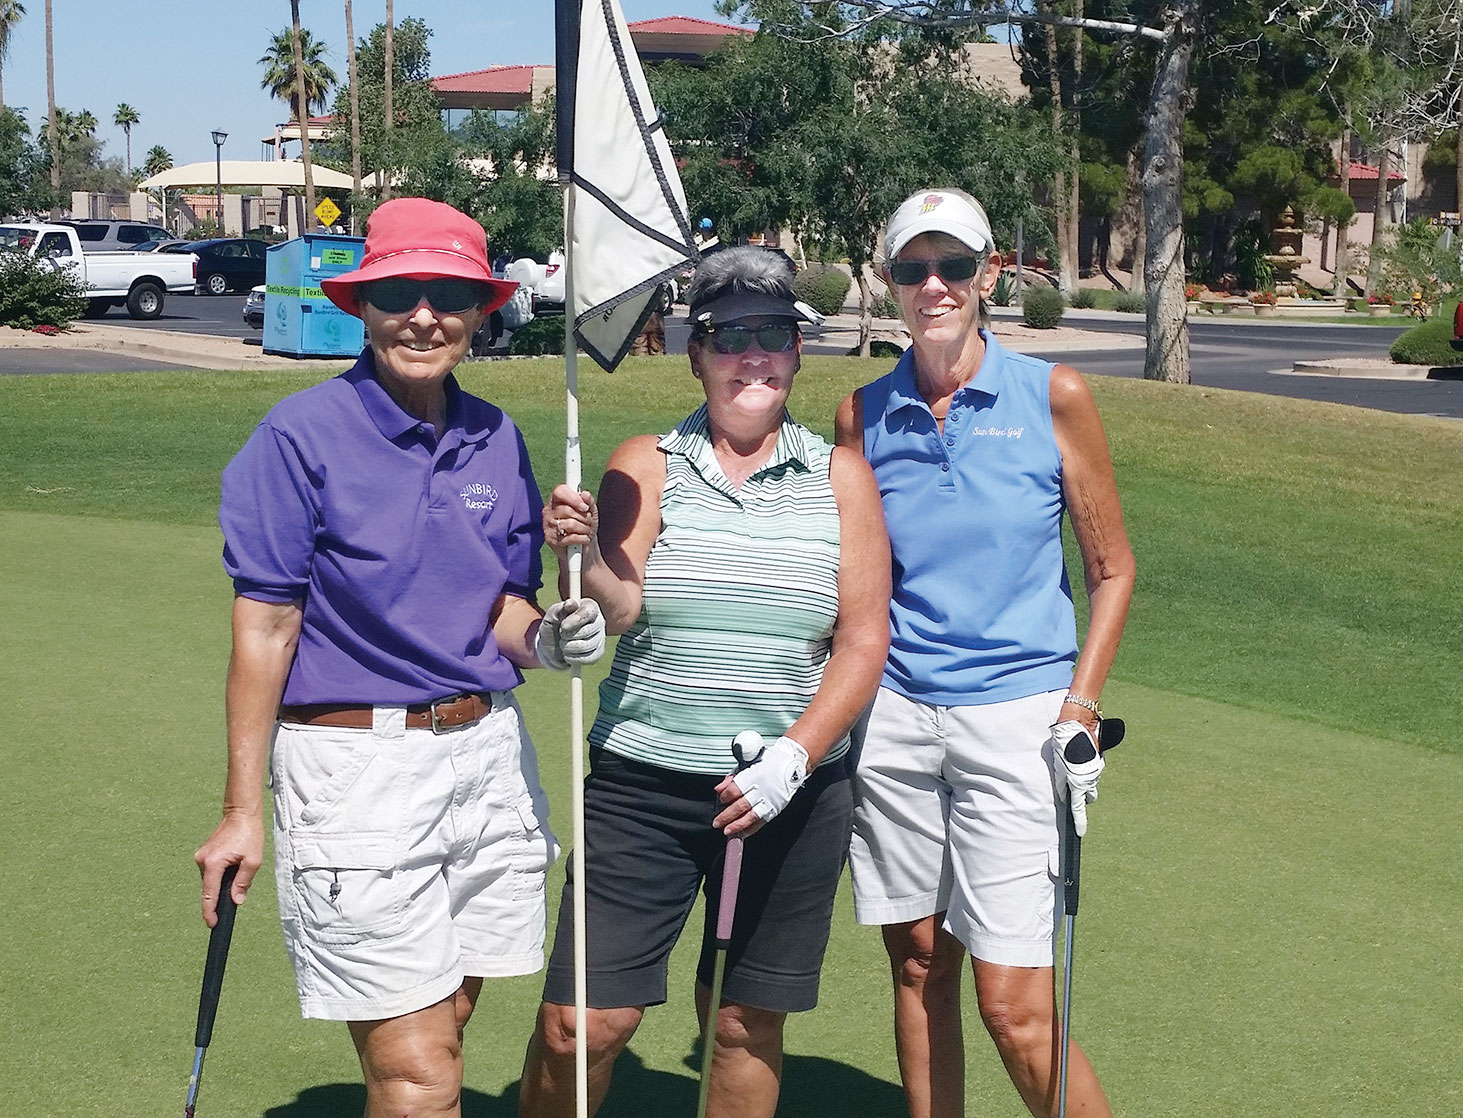 Pat Arnold, Barb Wallace and Jane Sirois